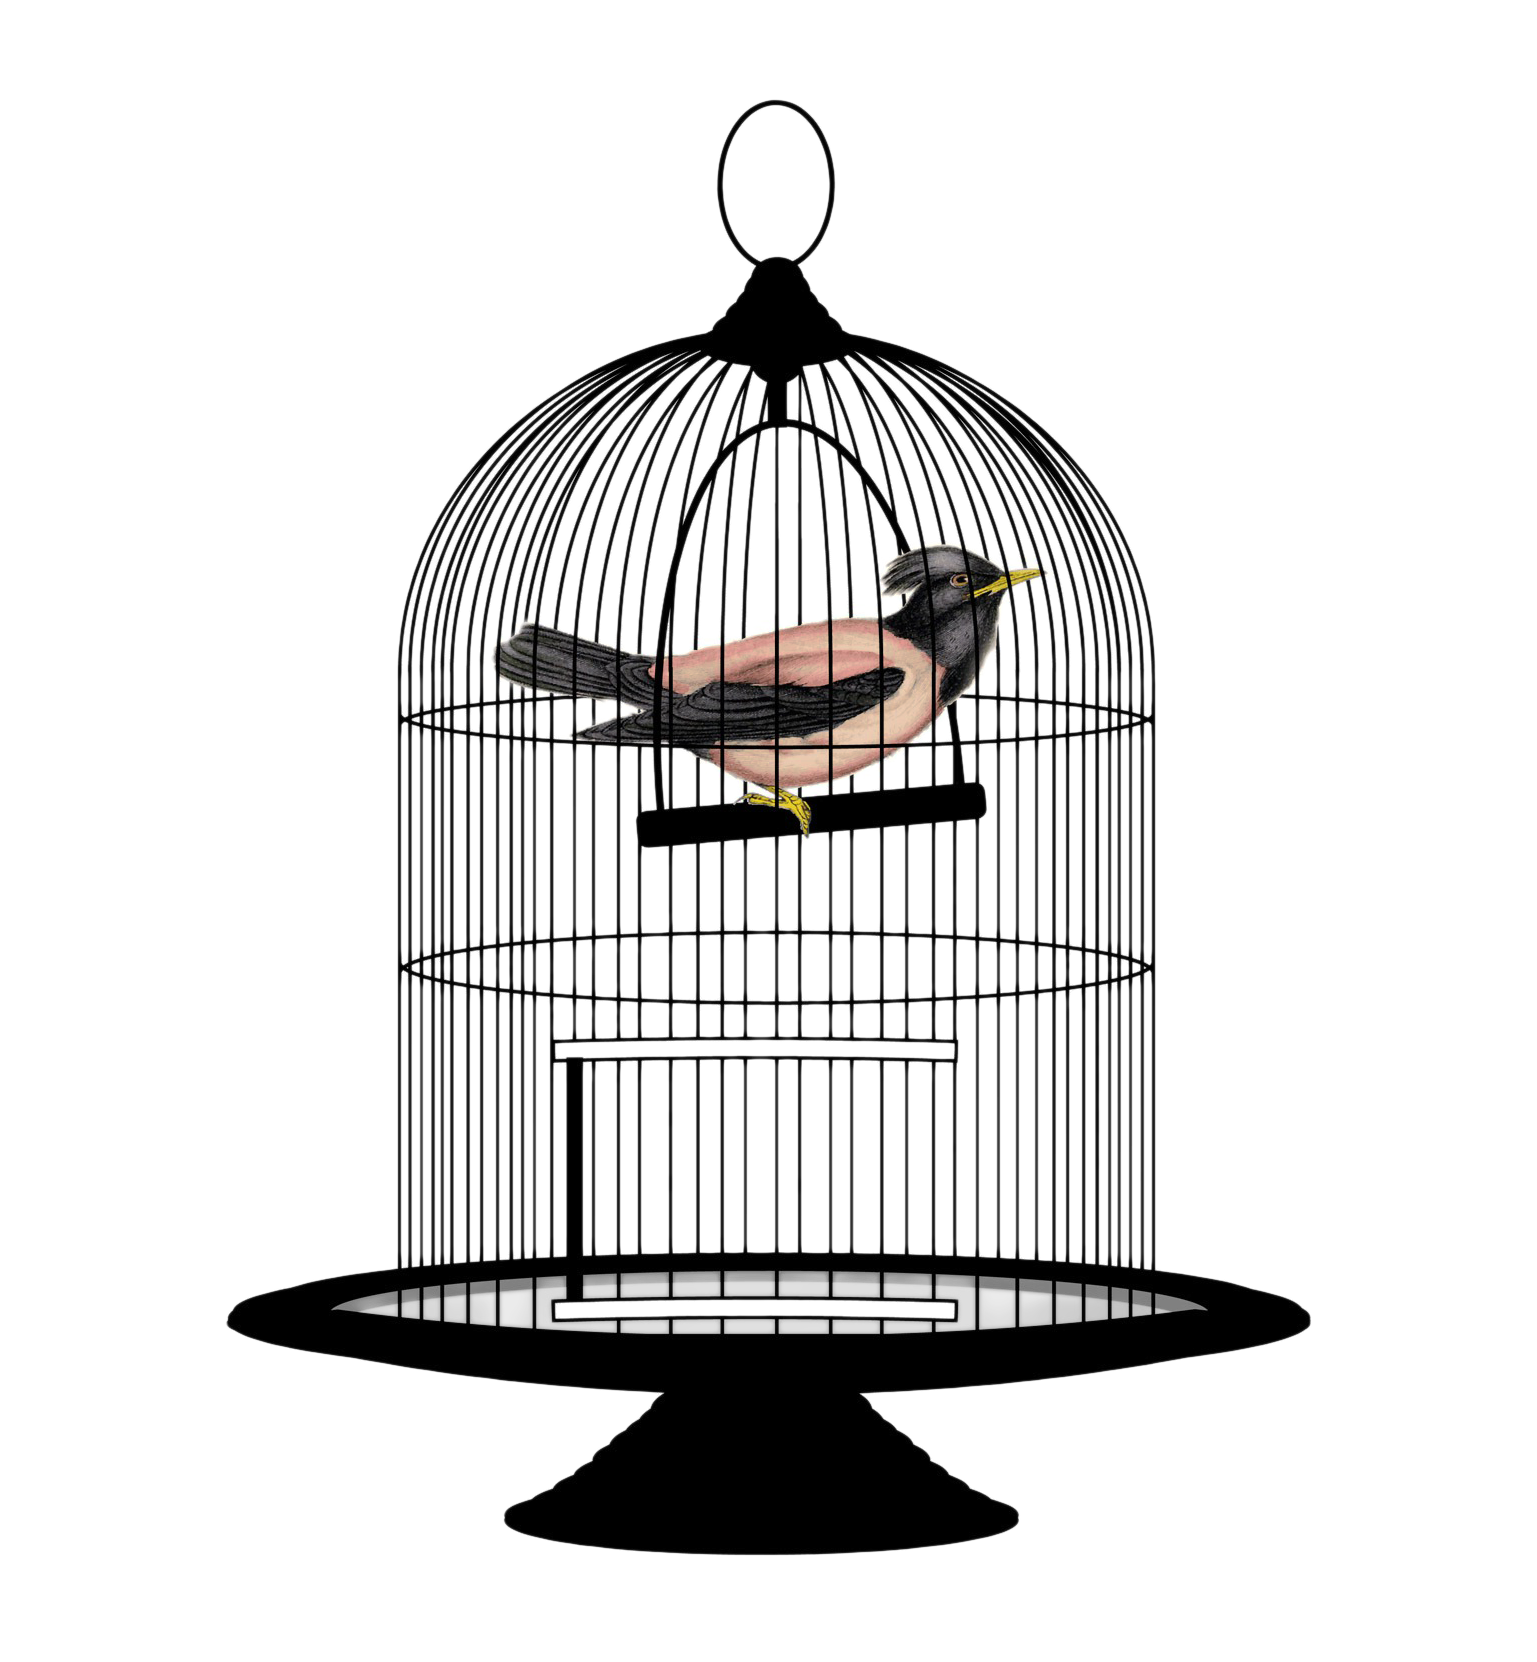 Related Image Bird Cage Cage Bird